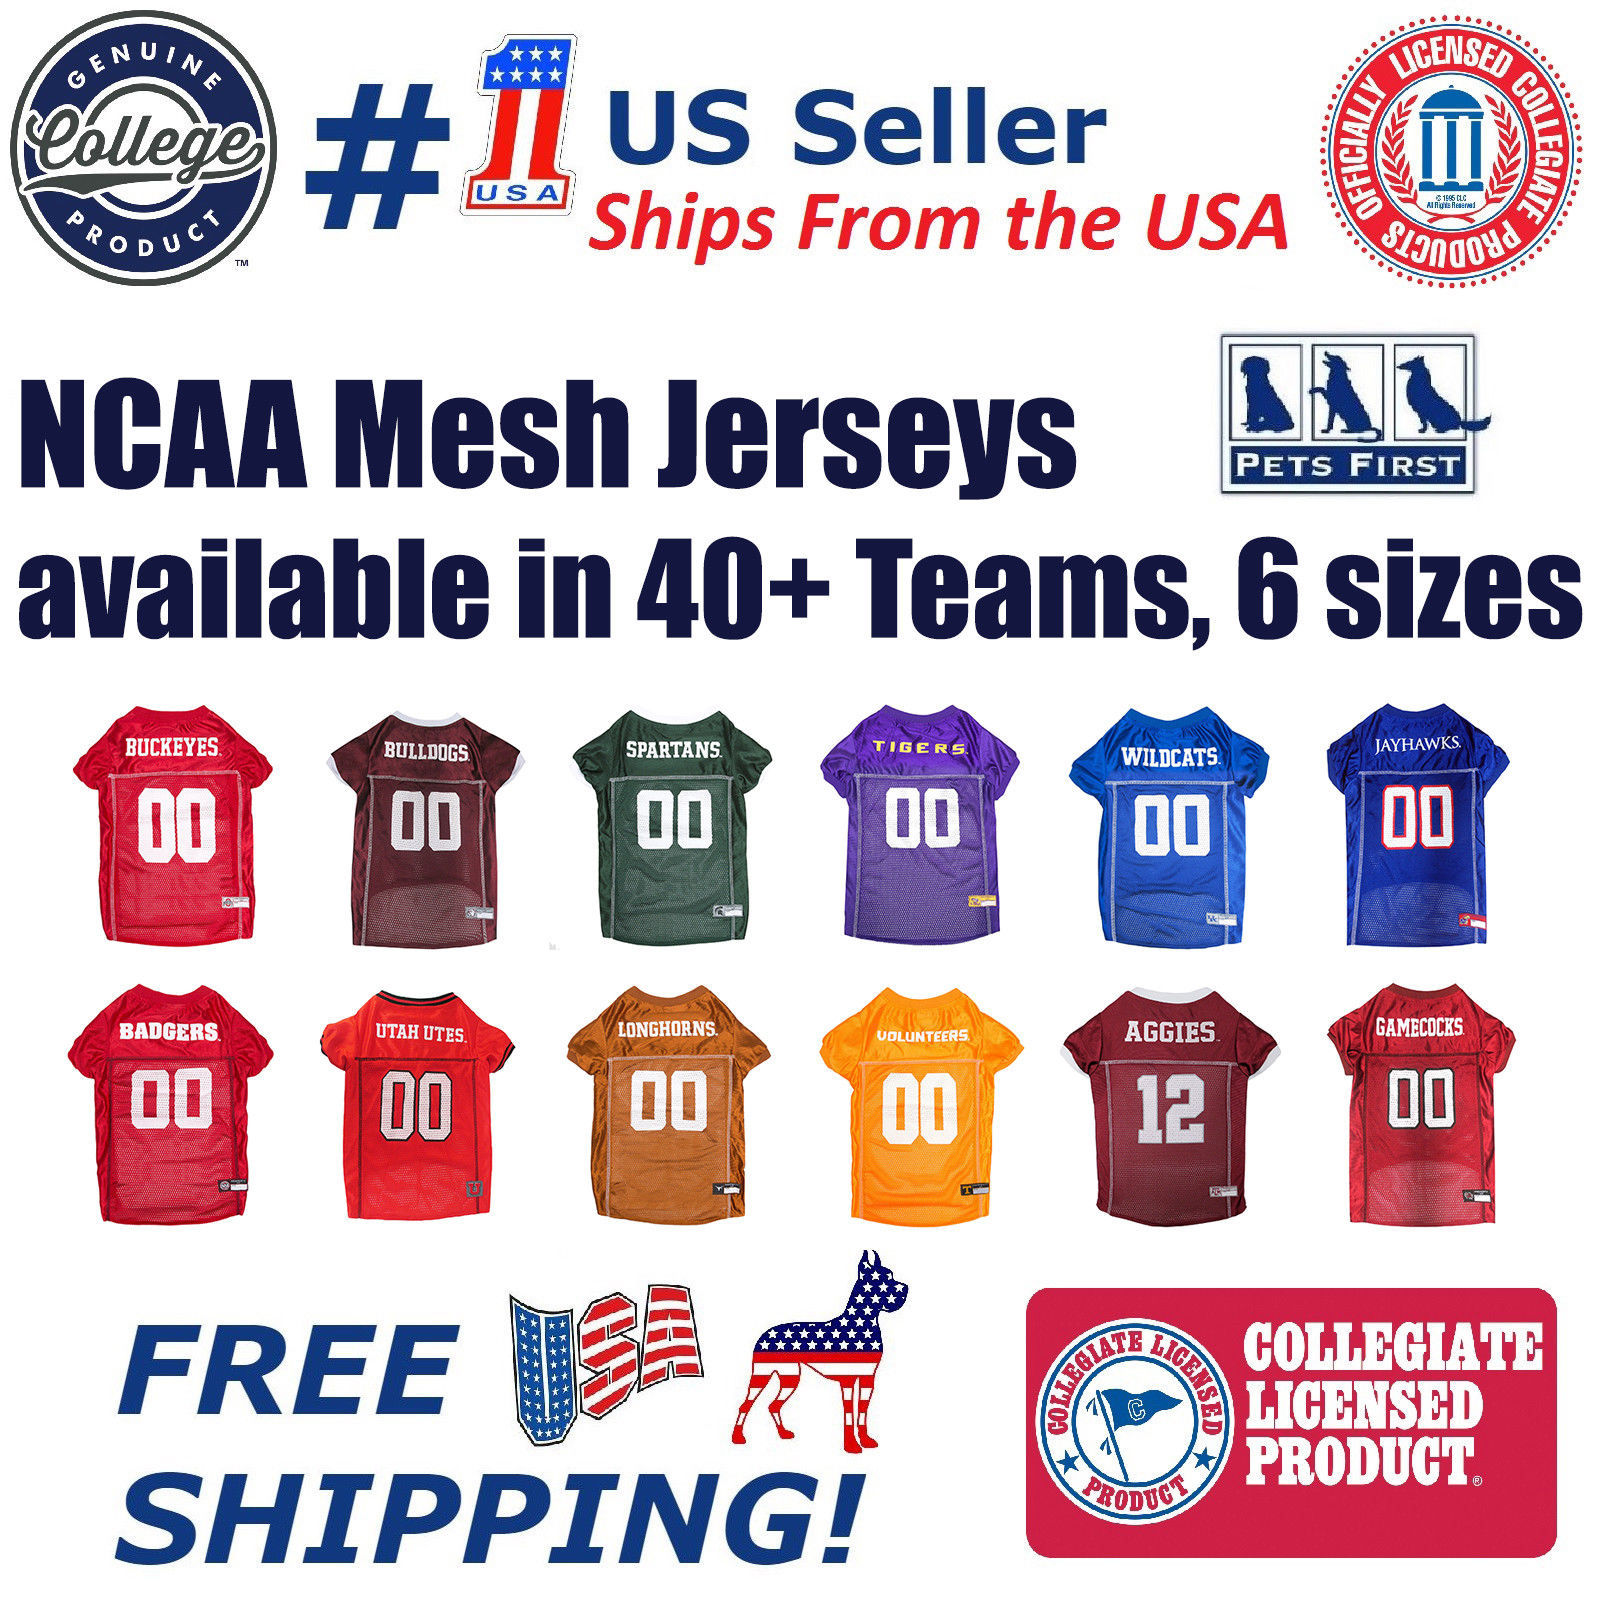 Primary image for NCAA Football/Basketball Mesh Jersey for Pets. available in 40+ Teams & 6 Sizes